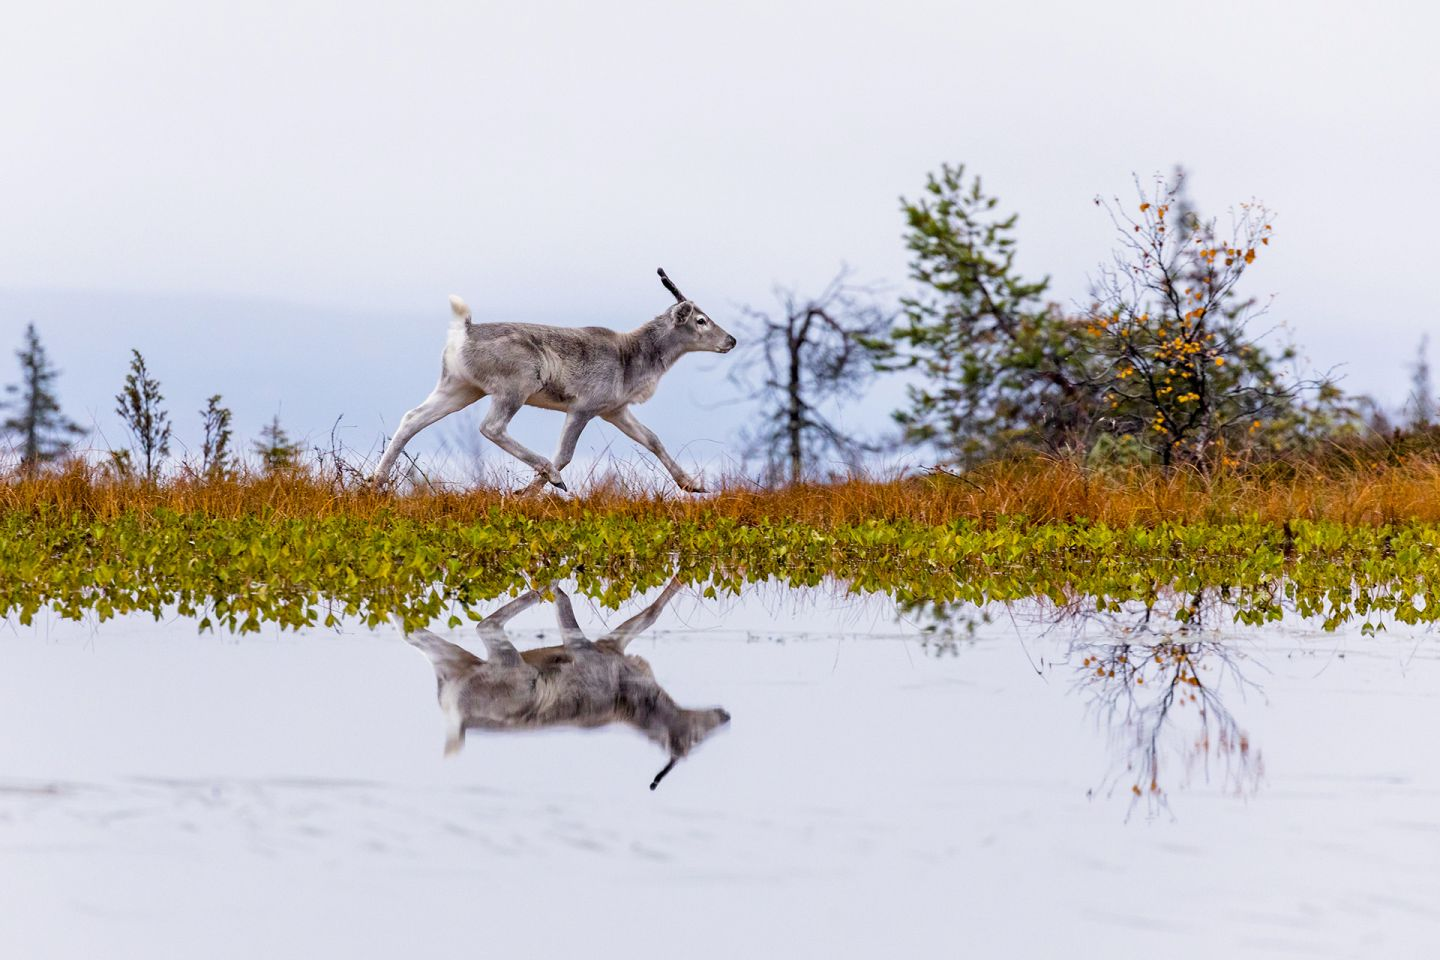 Reindeer reflected in lake, during production of A Reindeer's Journey in Lapland